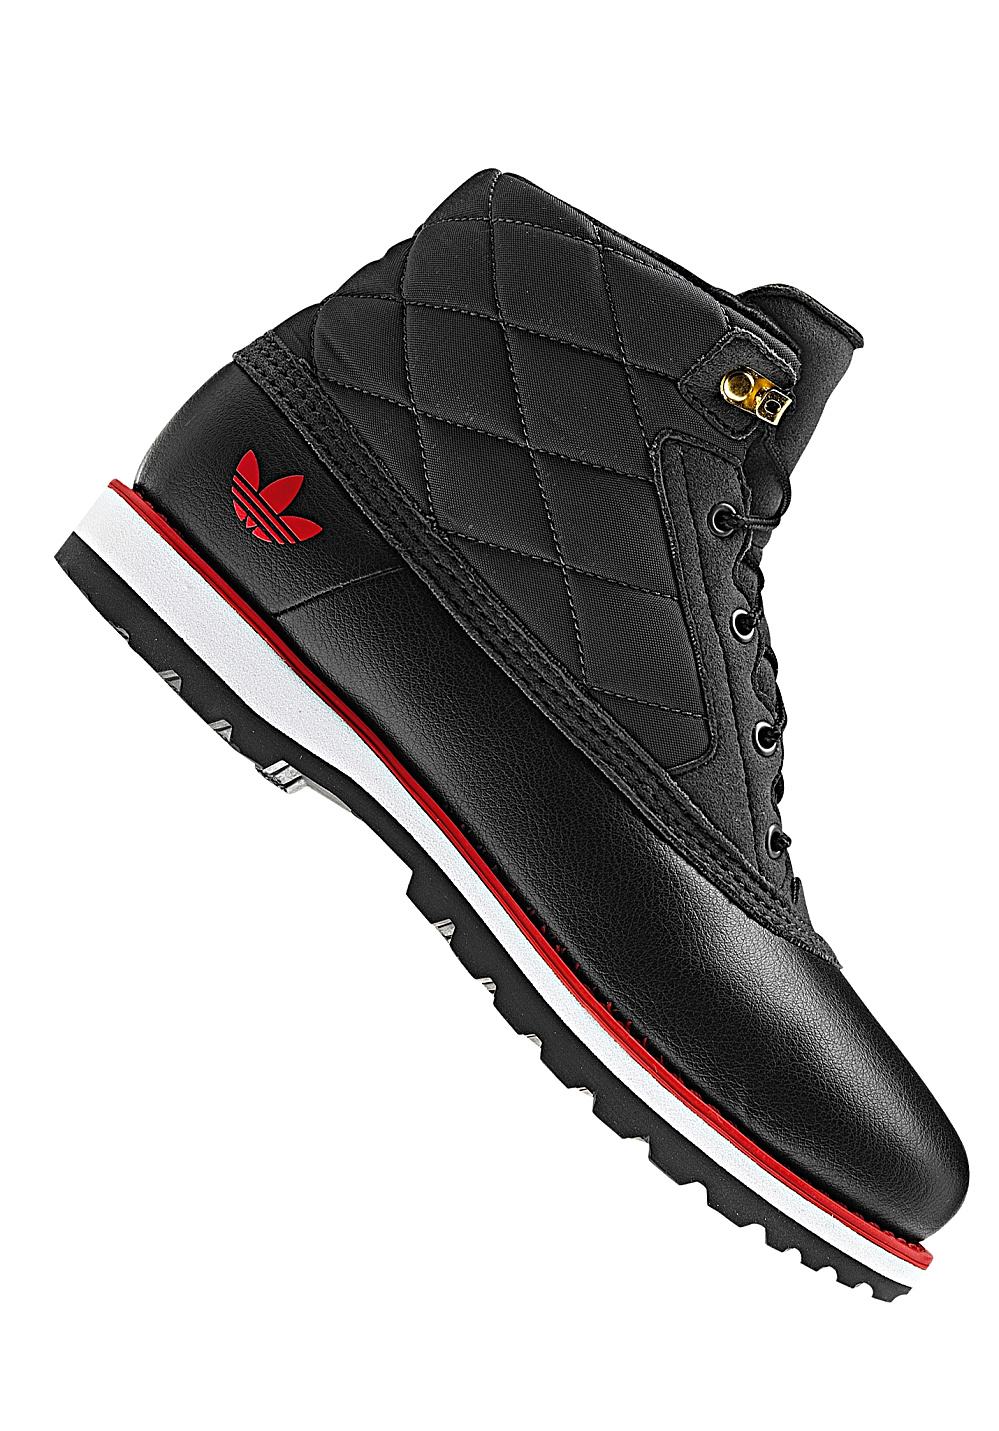 ADIDAS Adi Navy Quilt - Boots - Black - Planet Sports : adidas quilted boots - Adamdwight.com